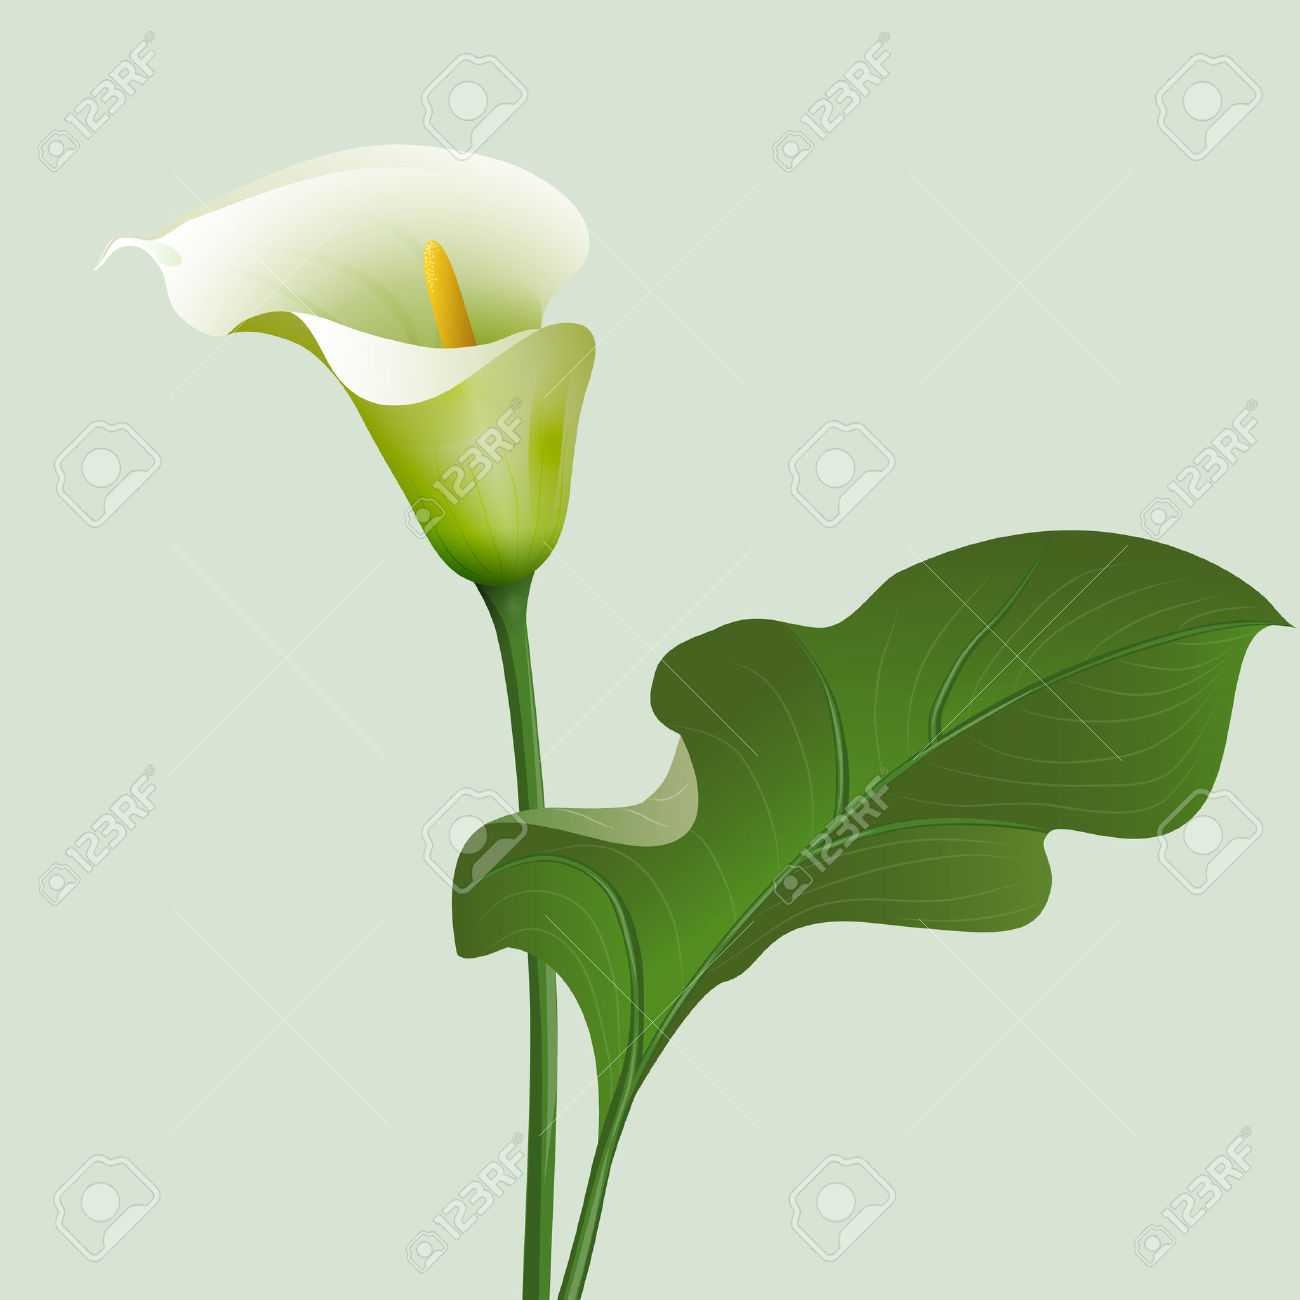 Flower Calla Lilies And Green Leaf. Royalty Free Cliparts, Vectors.